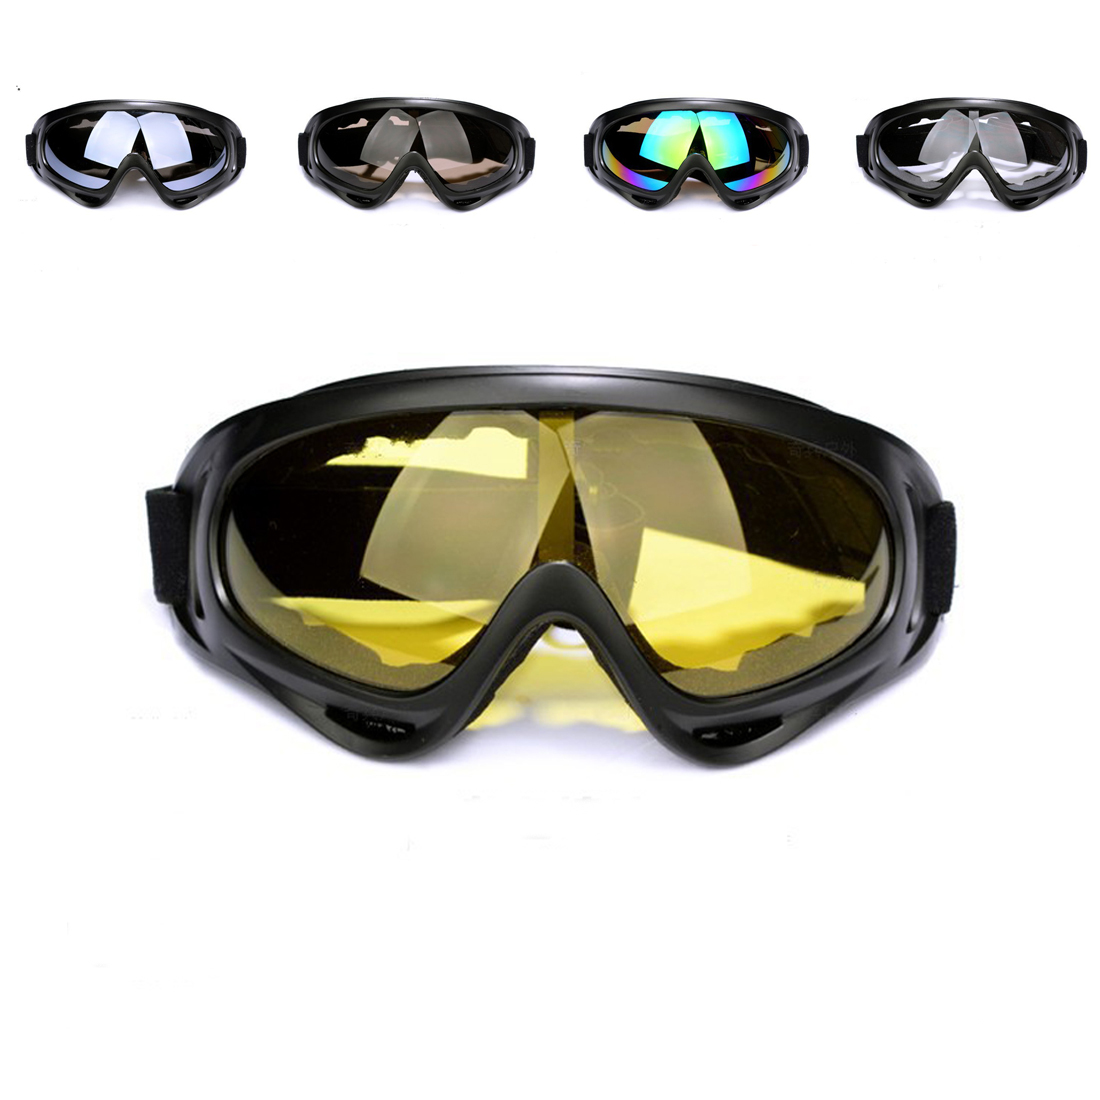 X400 Classic Style Tactical Soft Bullet Dart Explosion-proof Shock-resistant Protective Goggles For Nerf